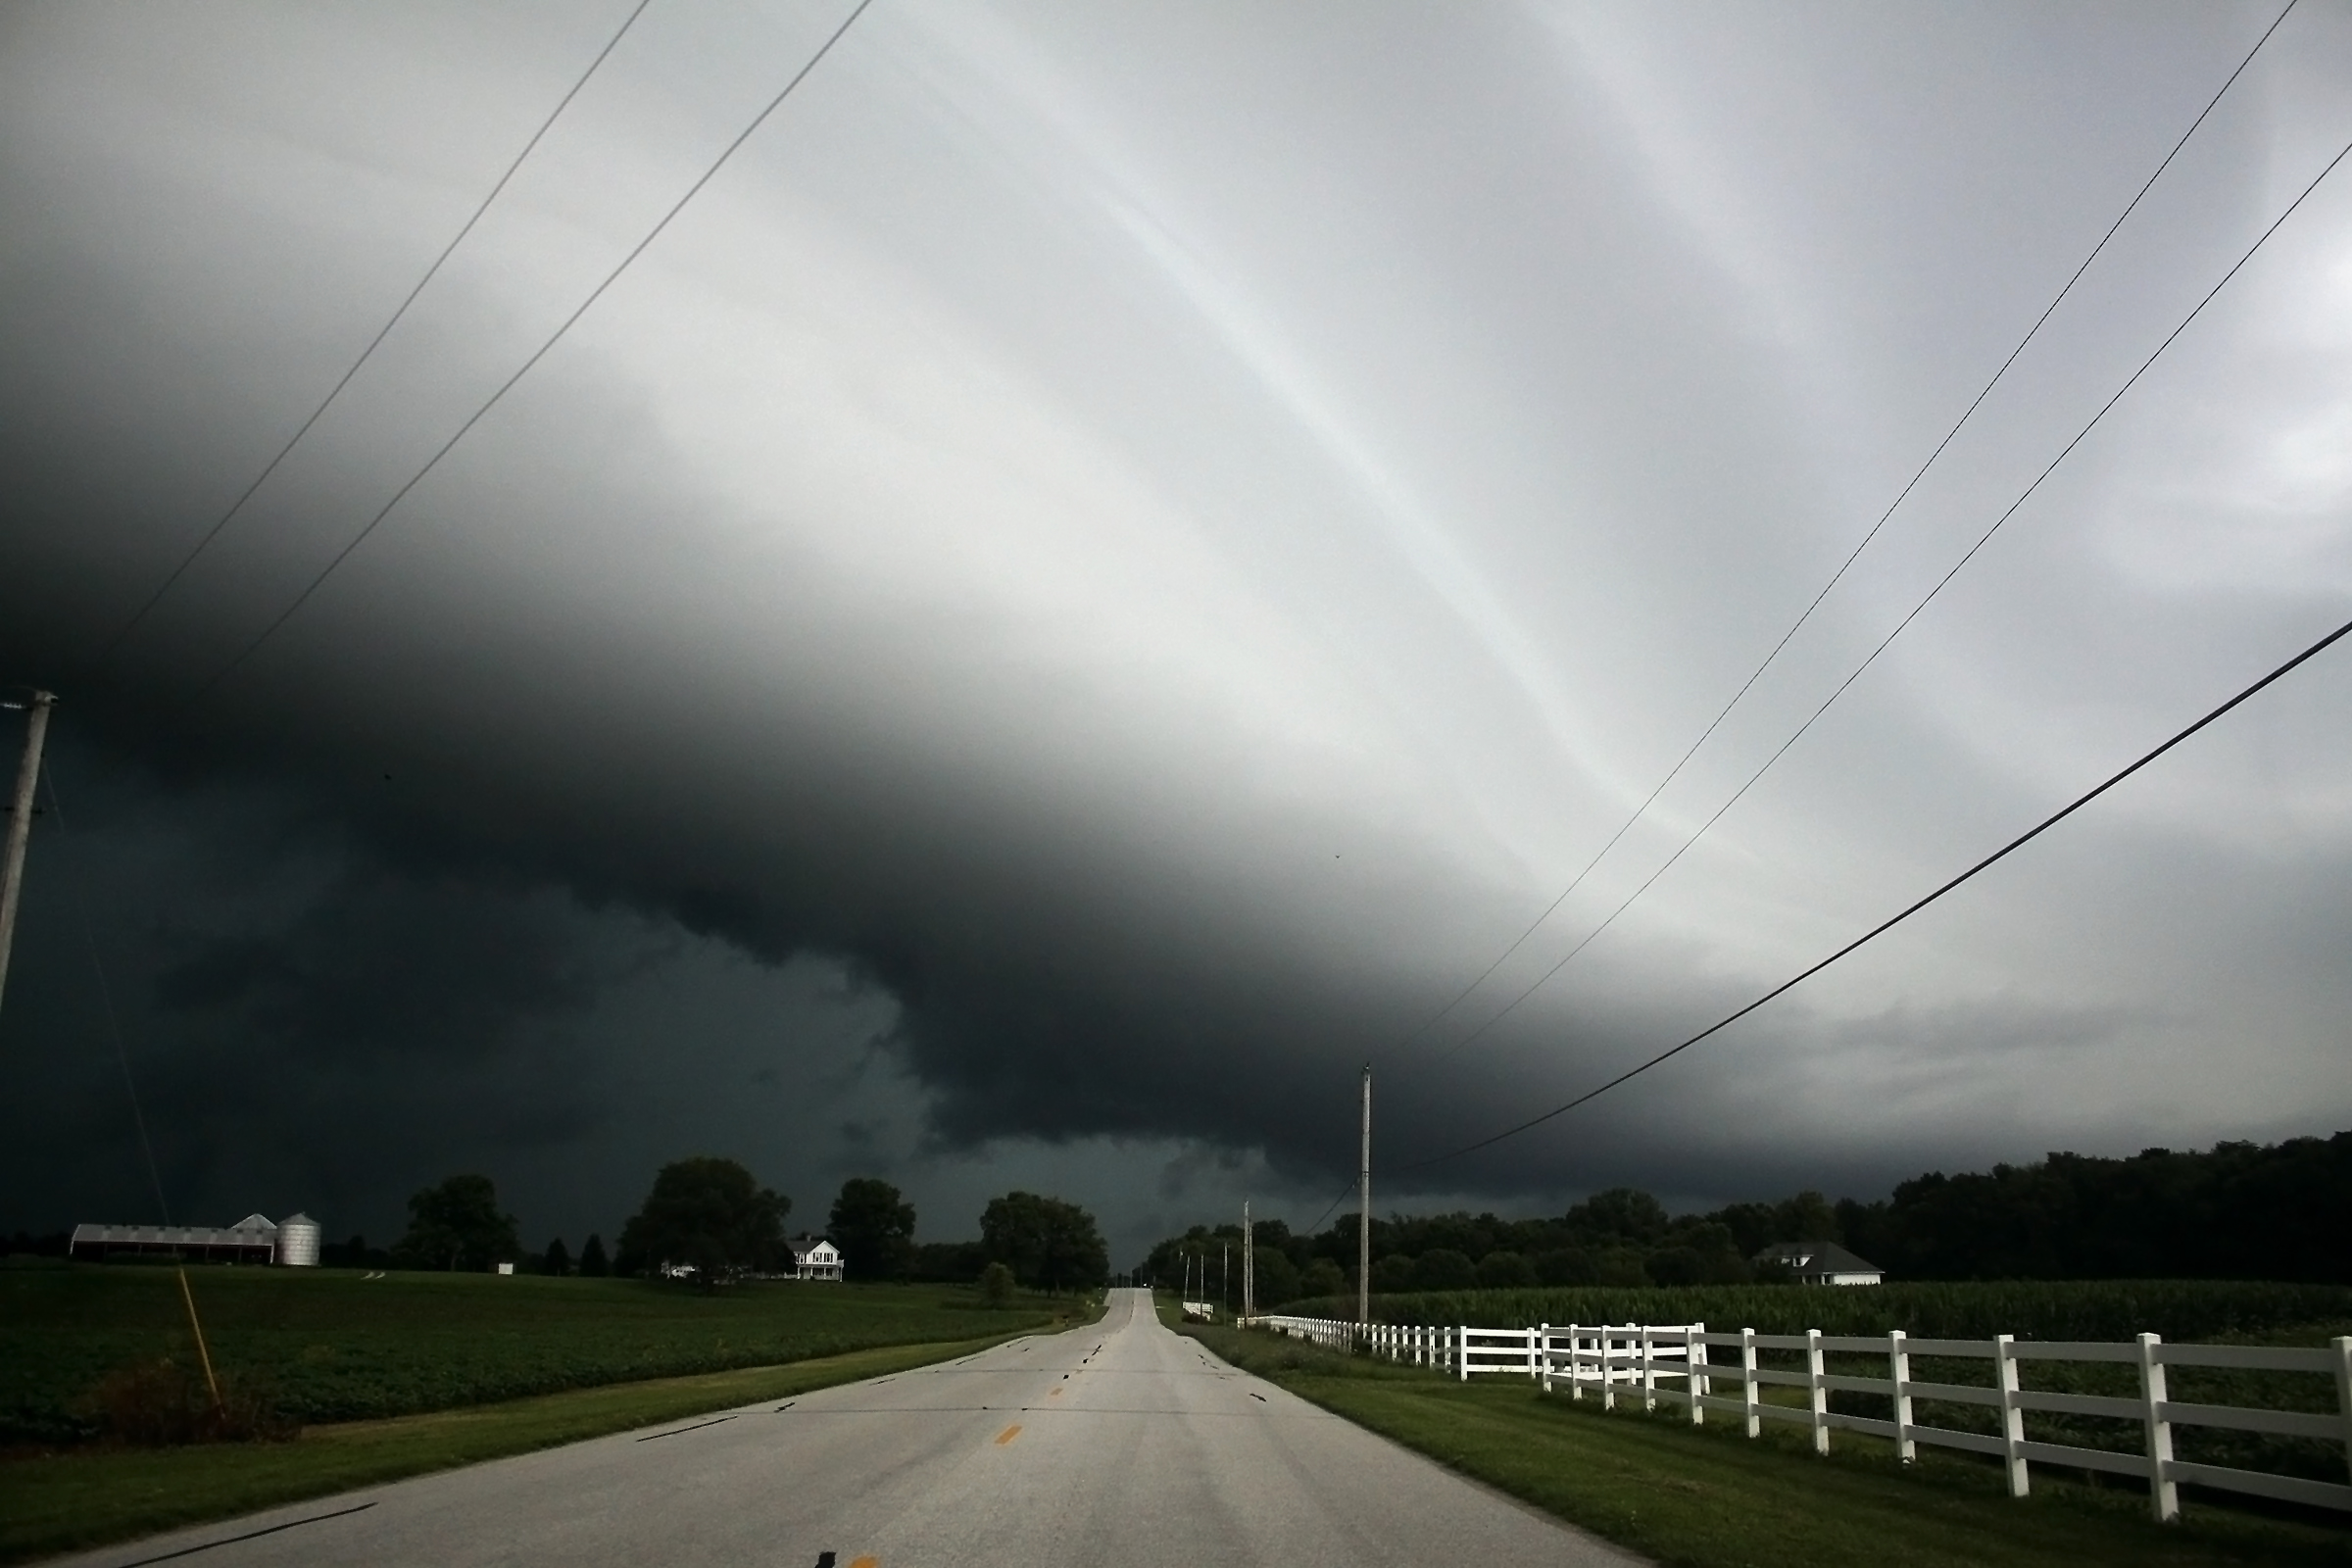 A massive shelf clouds rolls across Henry County, ushering in late summer thunderstorms. The darker clouds, which can be seen below the main cloud, occasionally threatened to swirl into funnel clouds, but eventually dissipated.